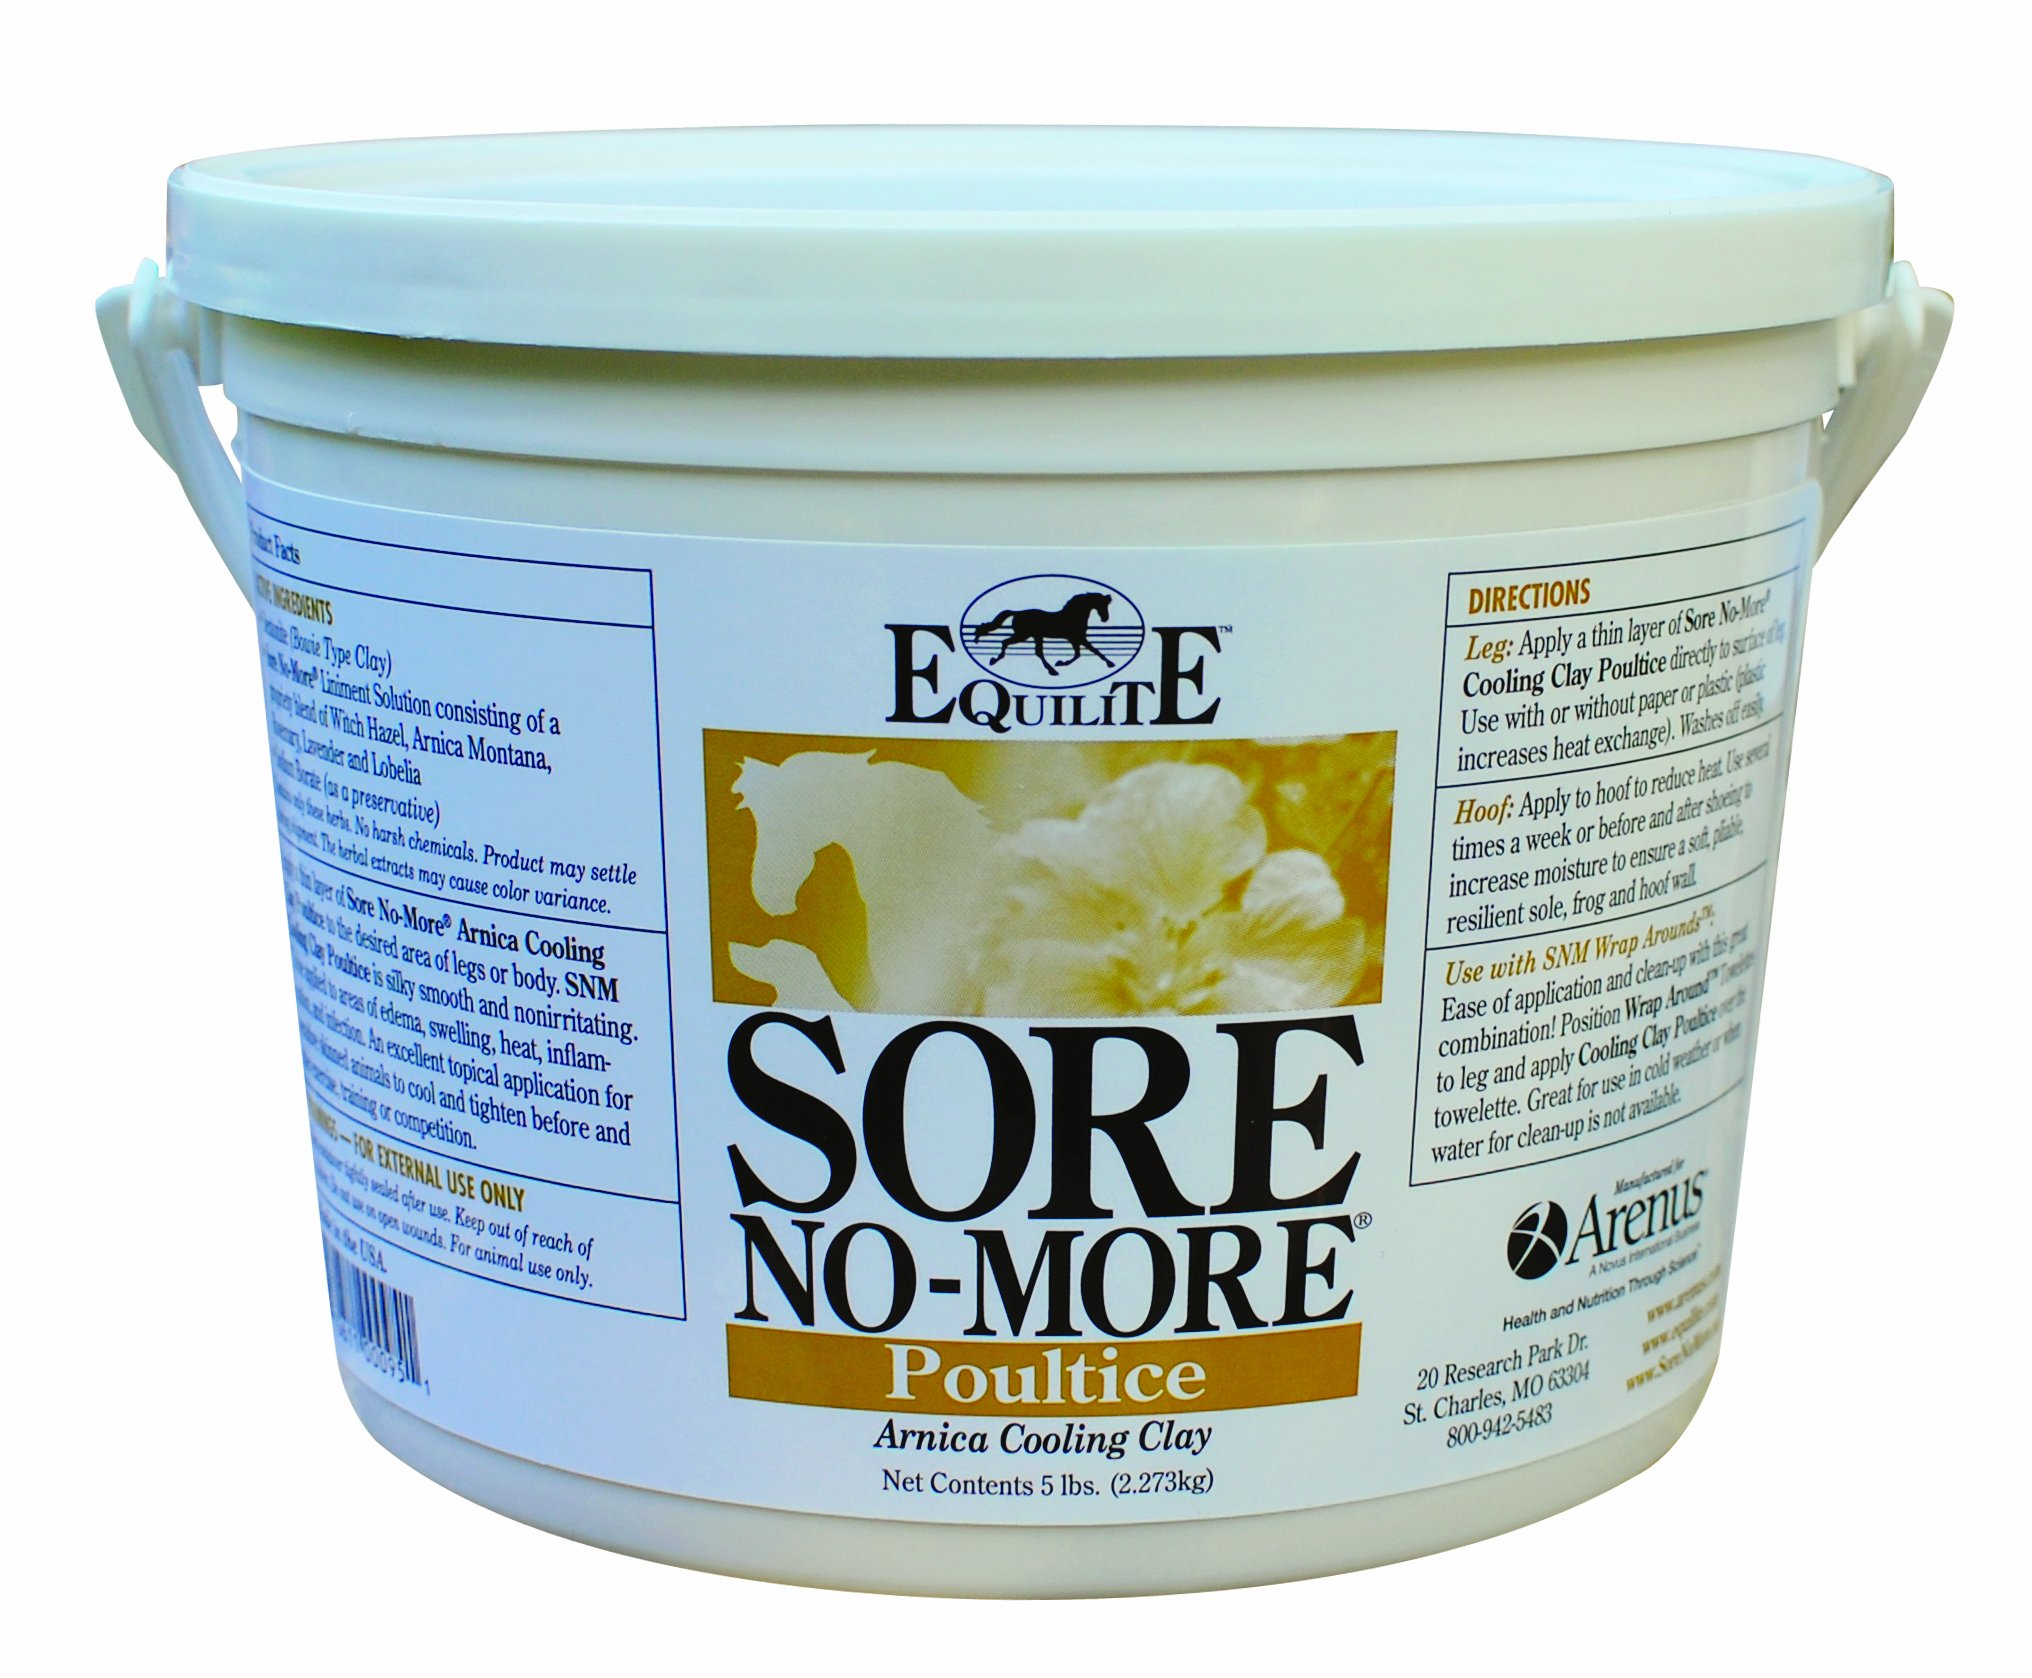 Sore No More Cooling Clay Poultice (23-Pound)